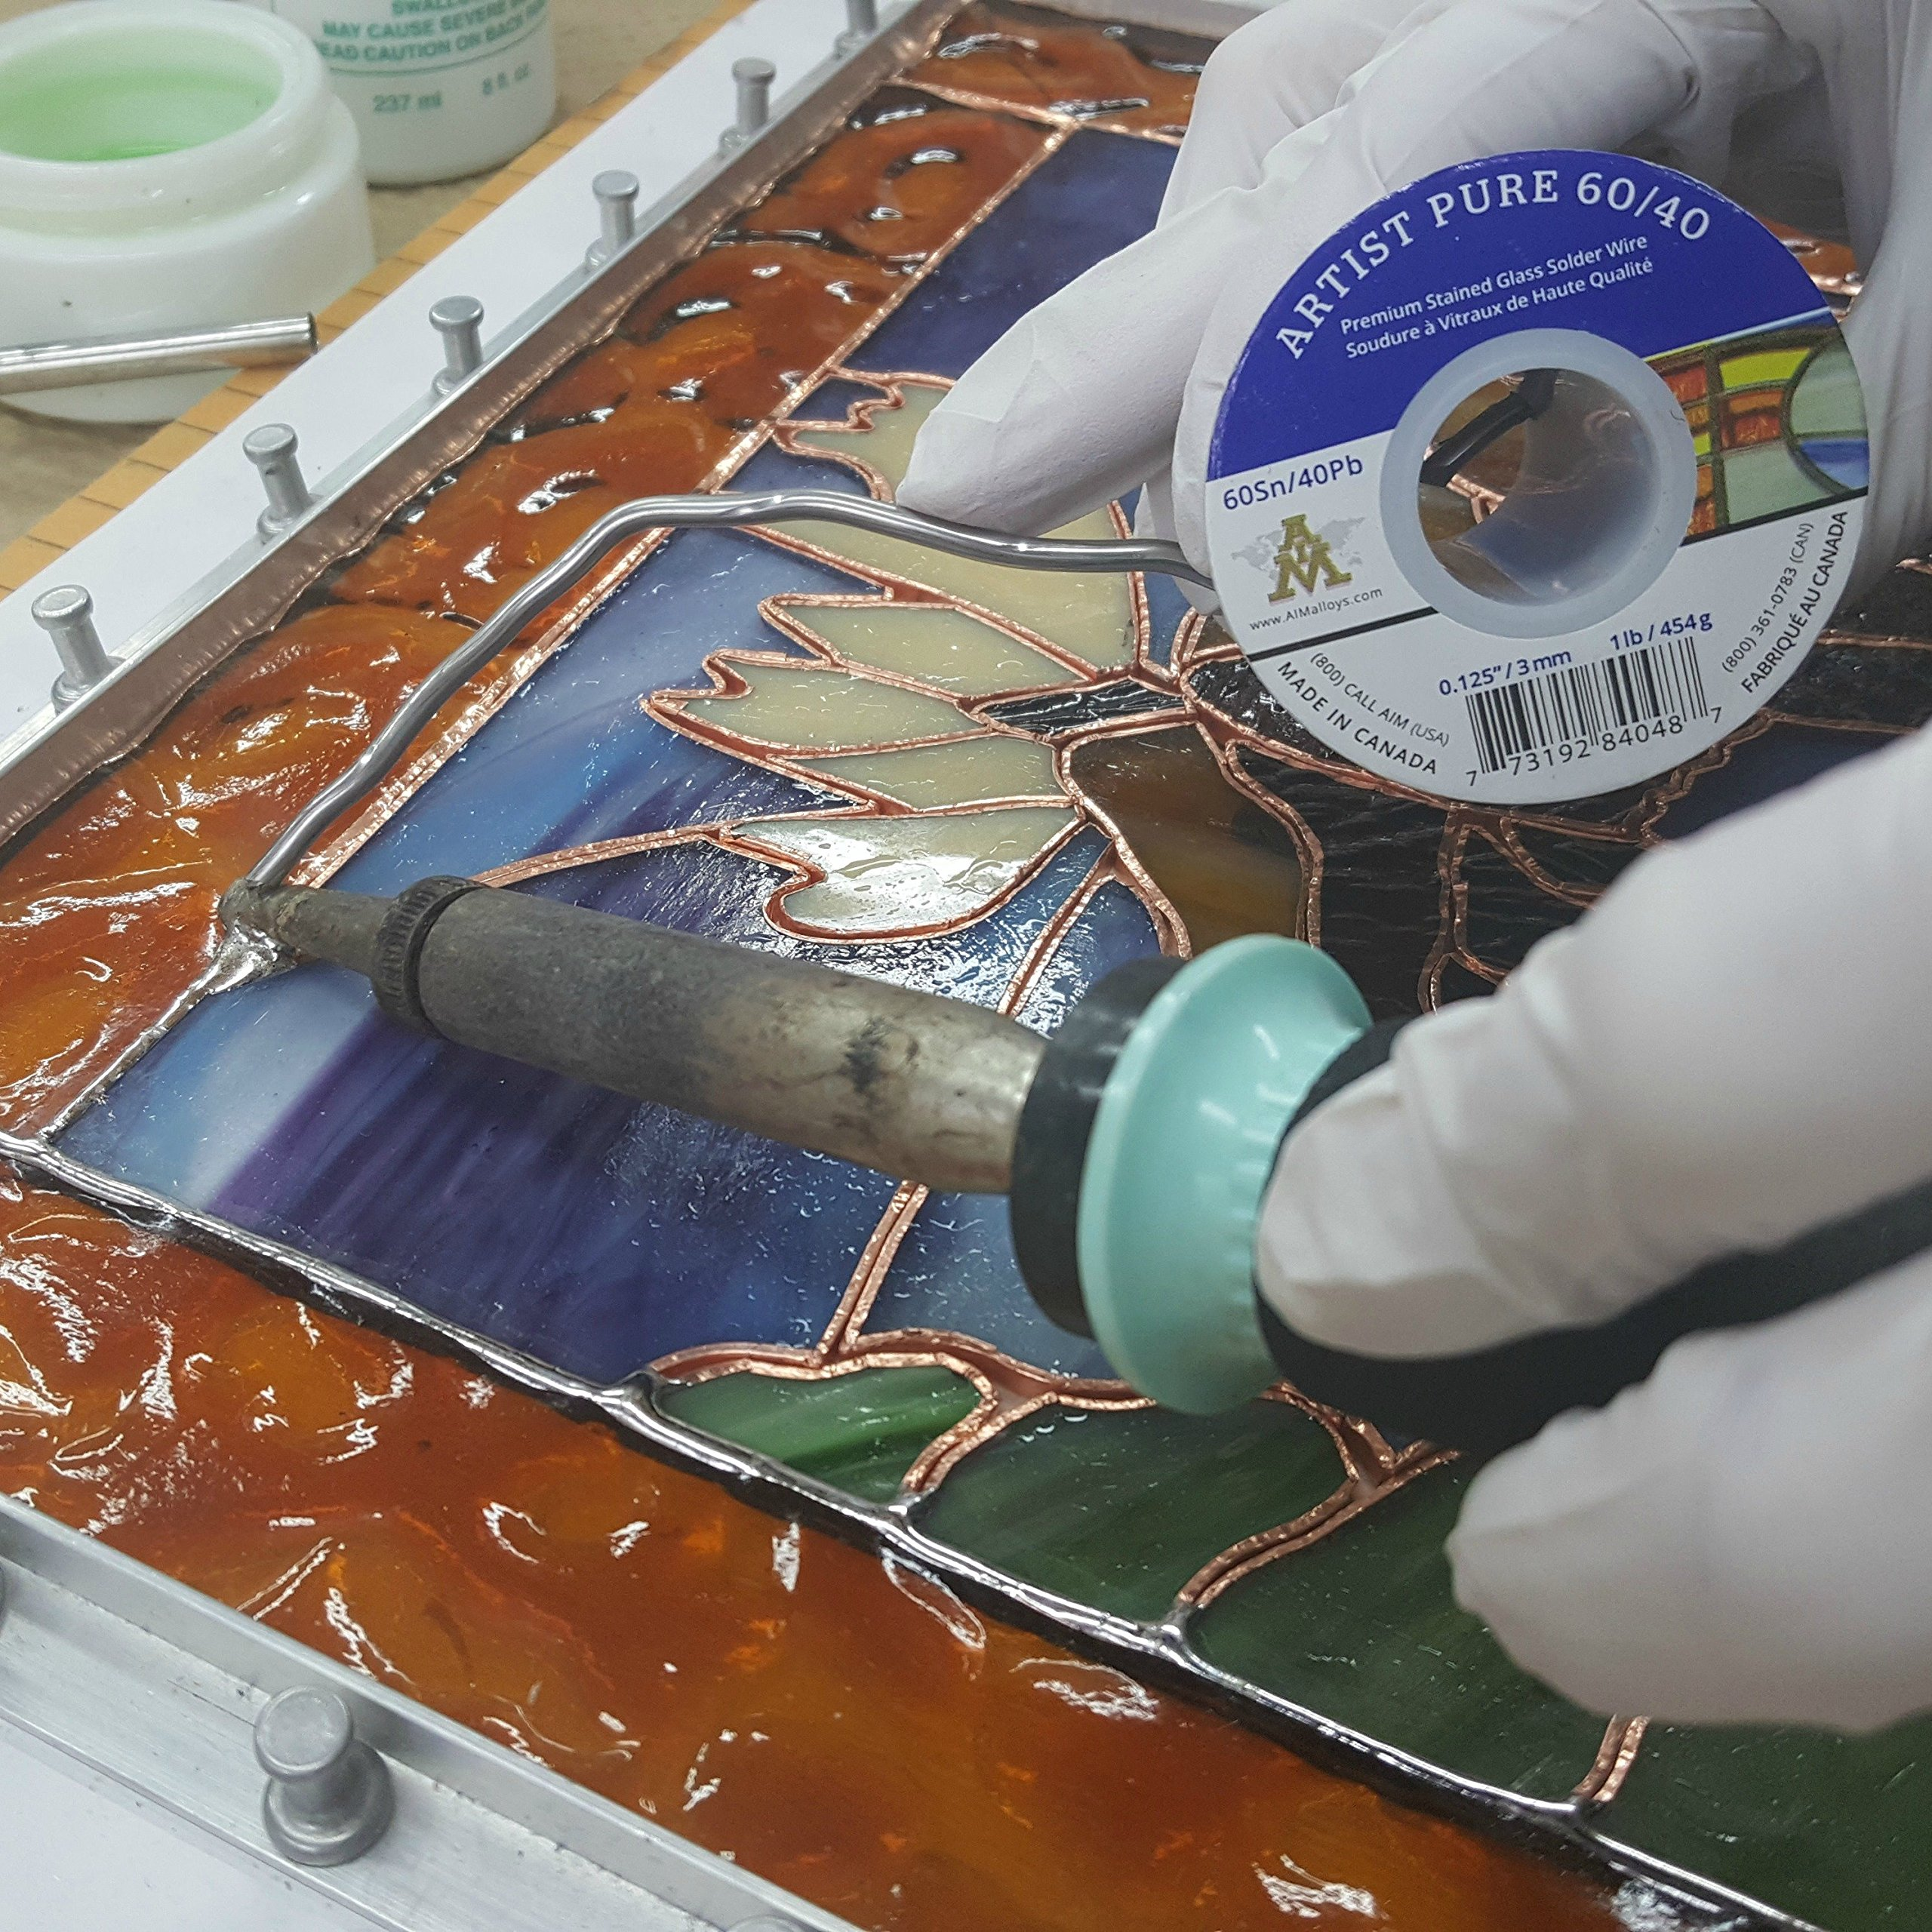 Artist Pure 60/40 Premium Stained Glass Solid Core Solder Wire, 1/8'' Diameter, 1 Pound Spool by Artist Pure (Image #3)